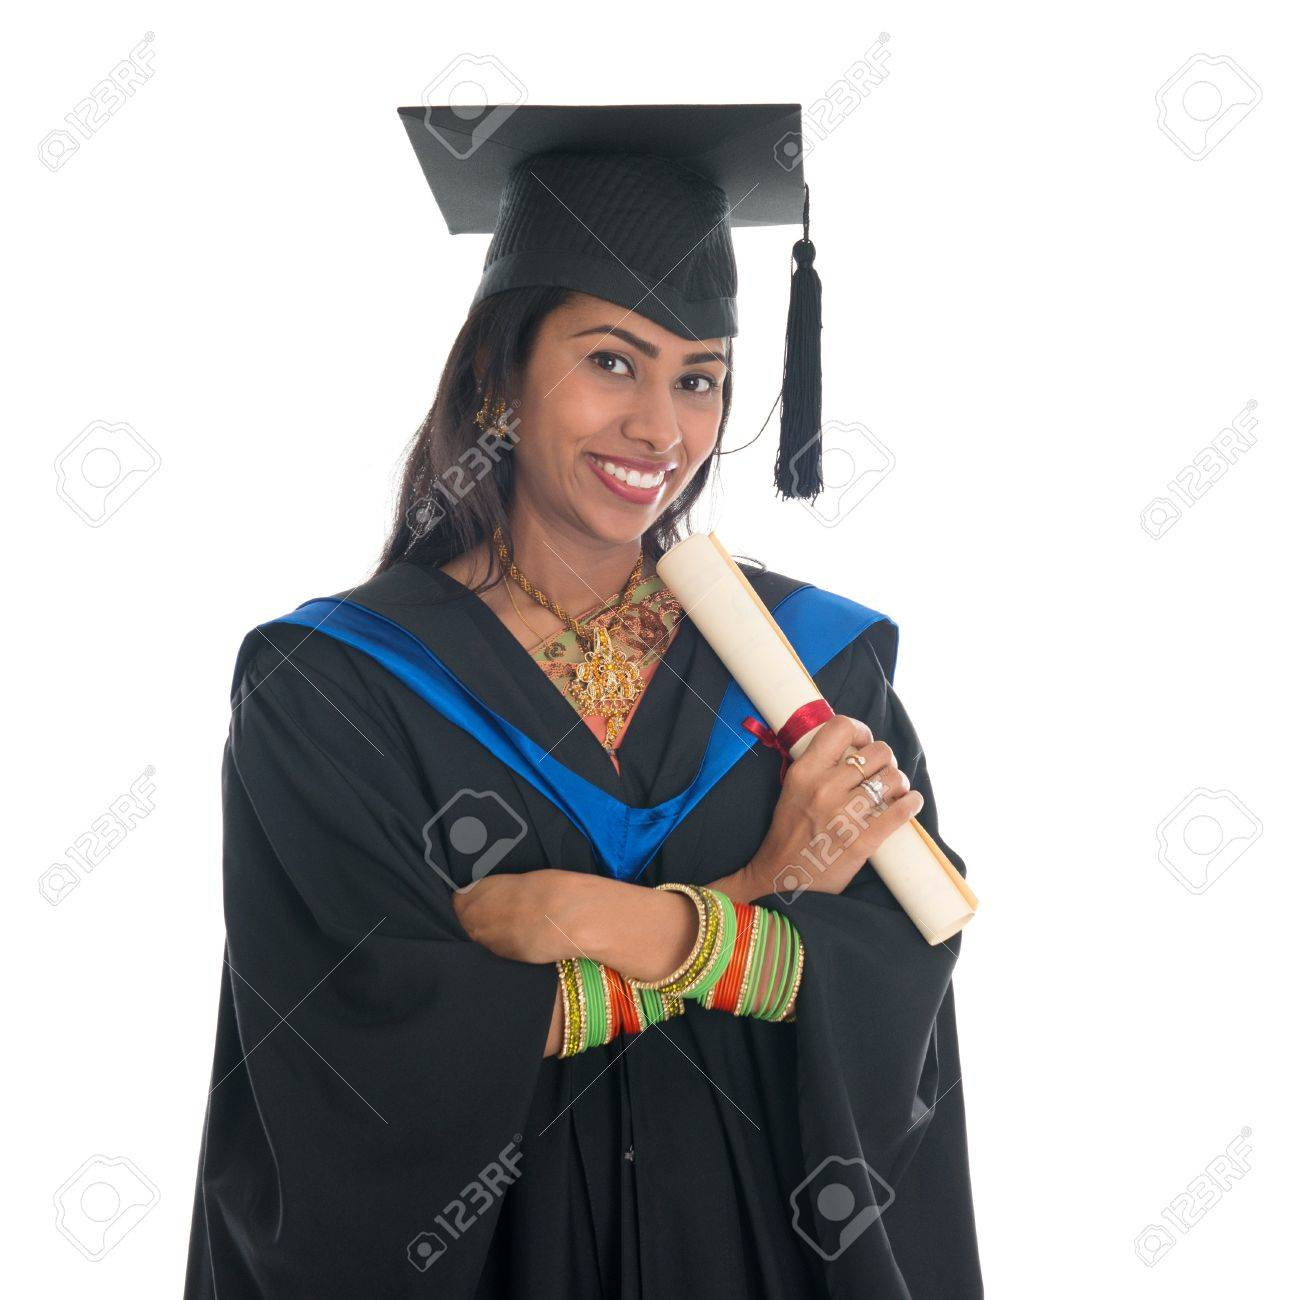 Happy Indian College Student In Graduation Gown And Cap Holding ...